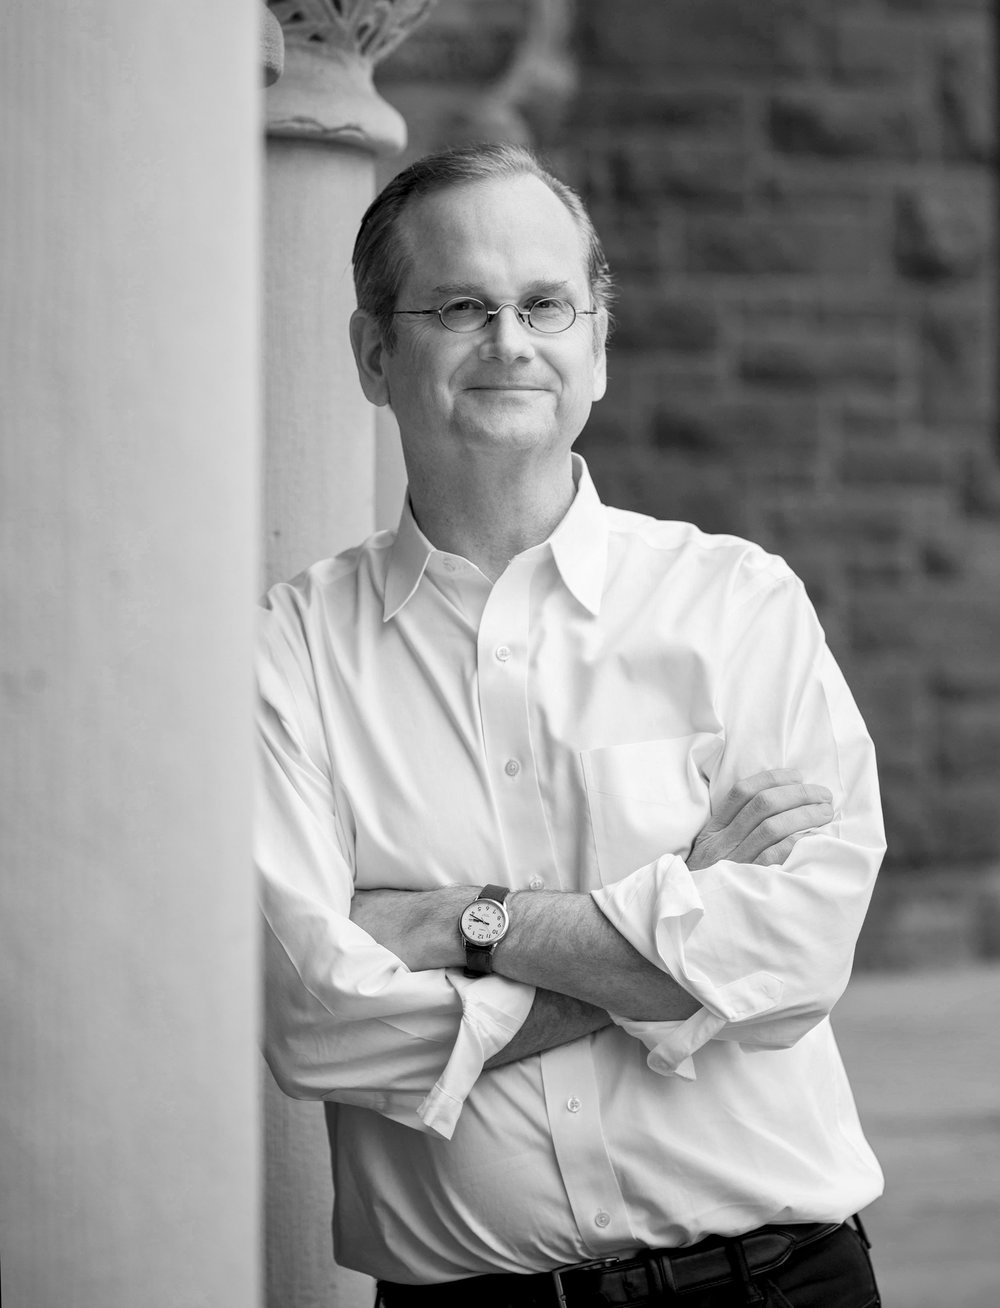 LAWRENCE LESSIG | PROFESSOR OF LAW, HARVARD LAW SCHOOL